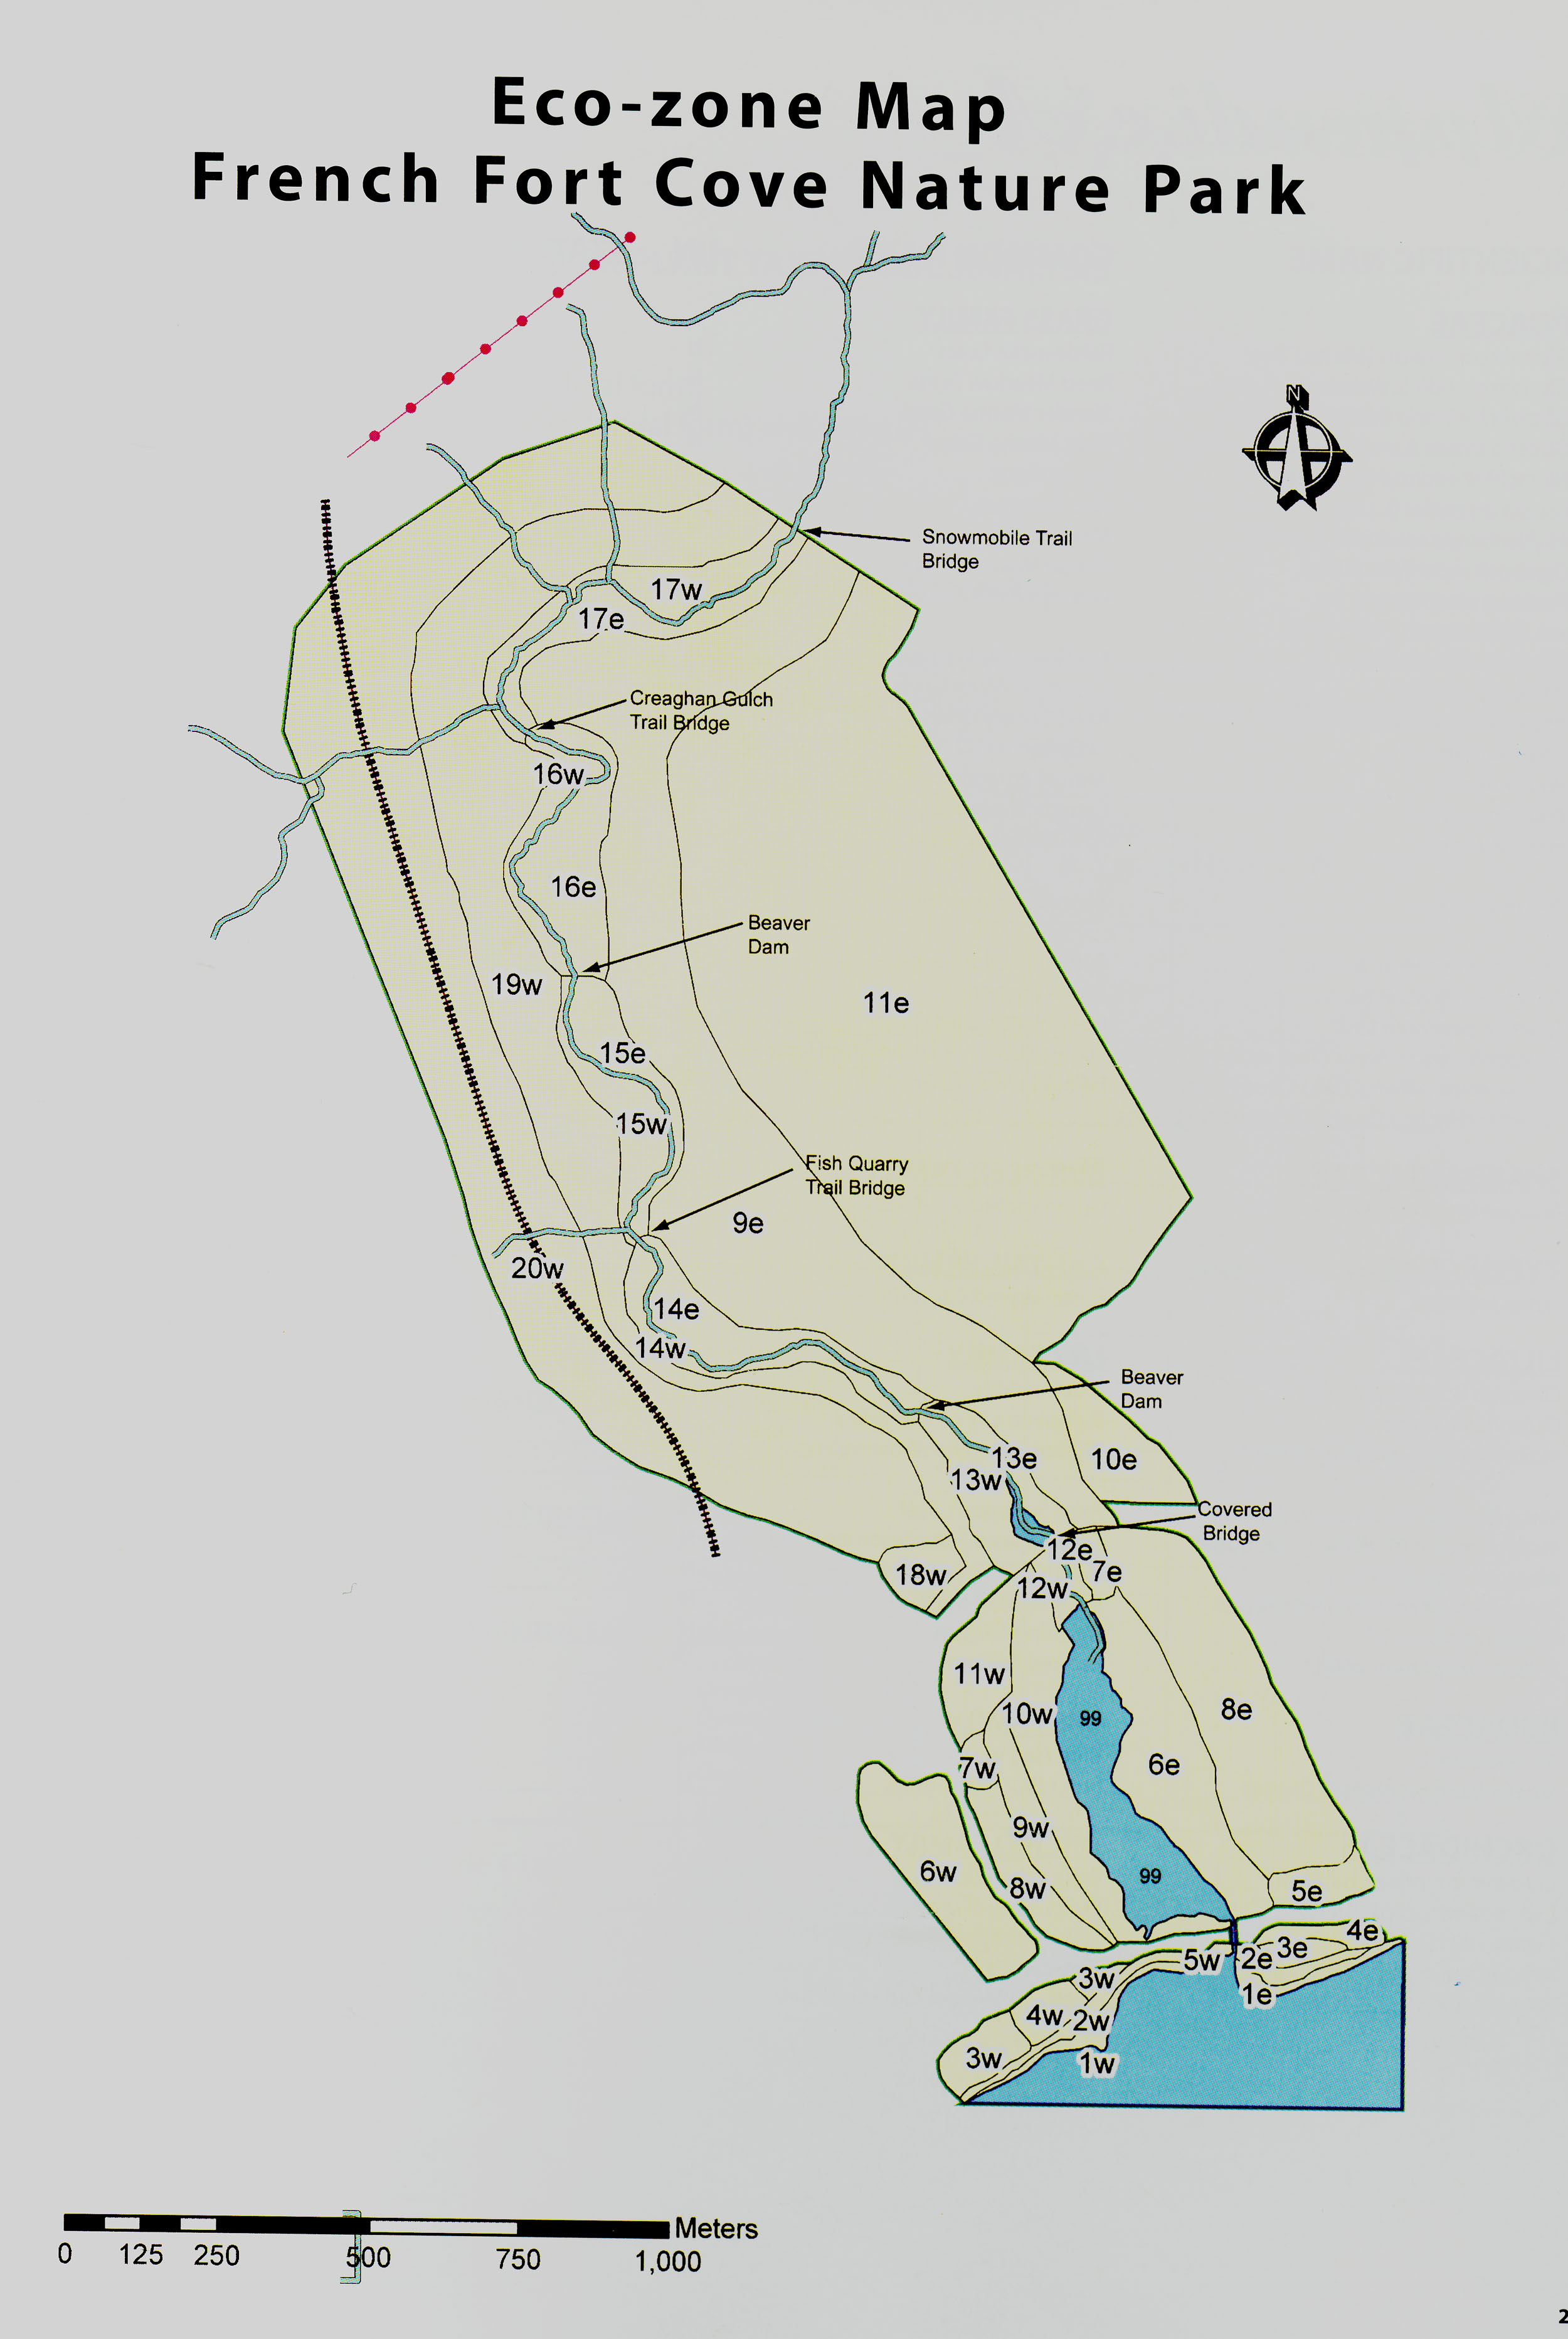 Eco-zone Map: French Fort Cove Nature Park